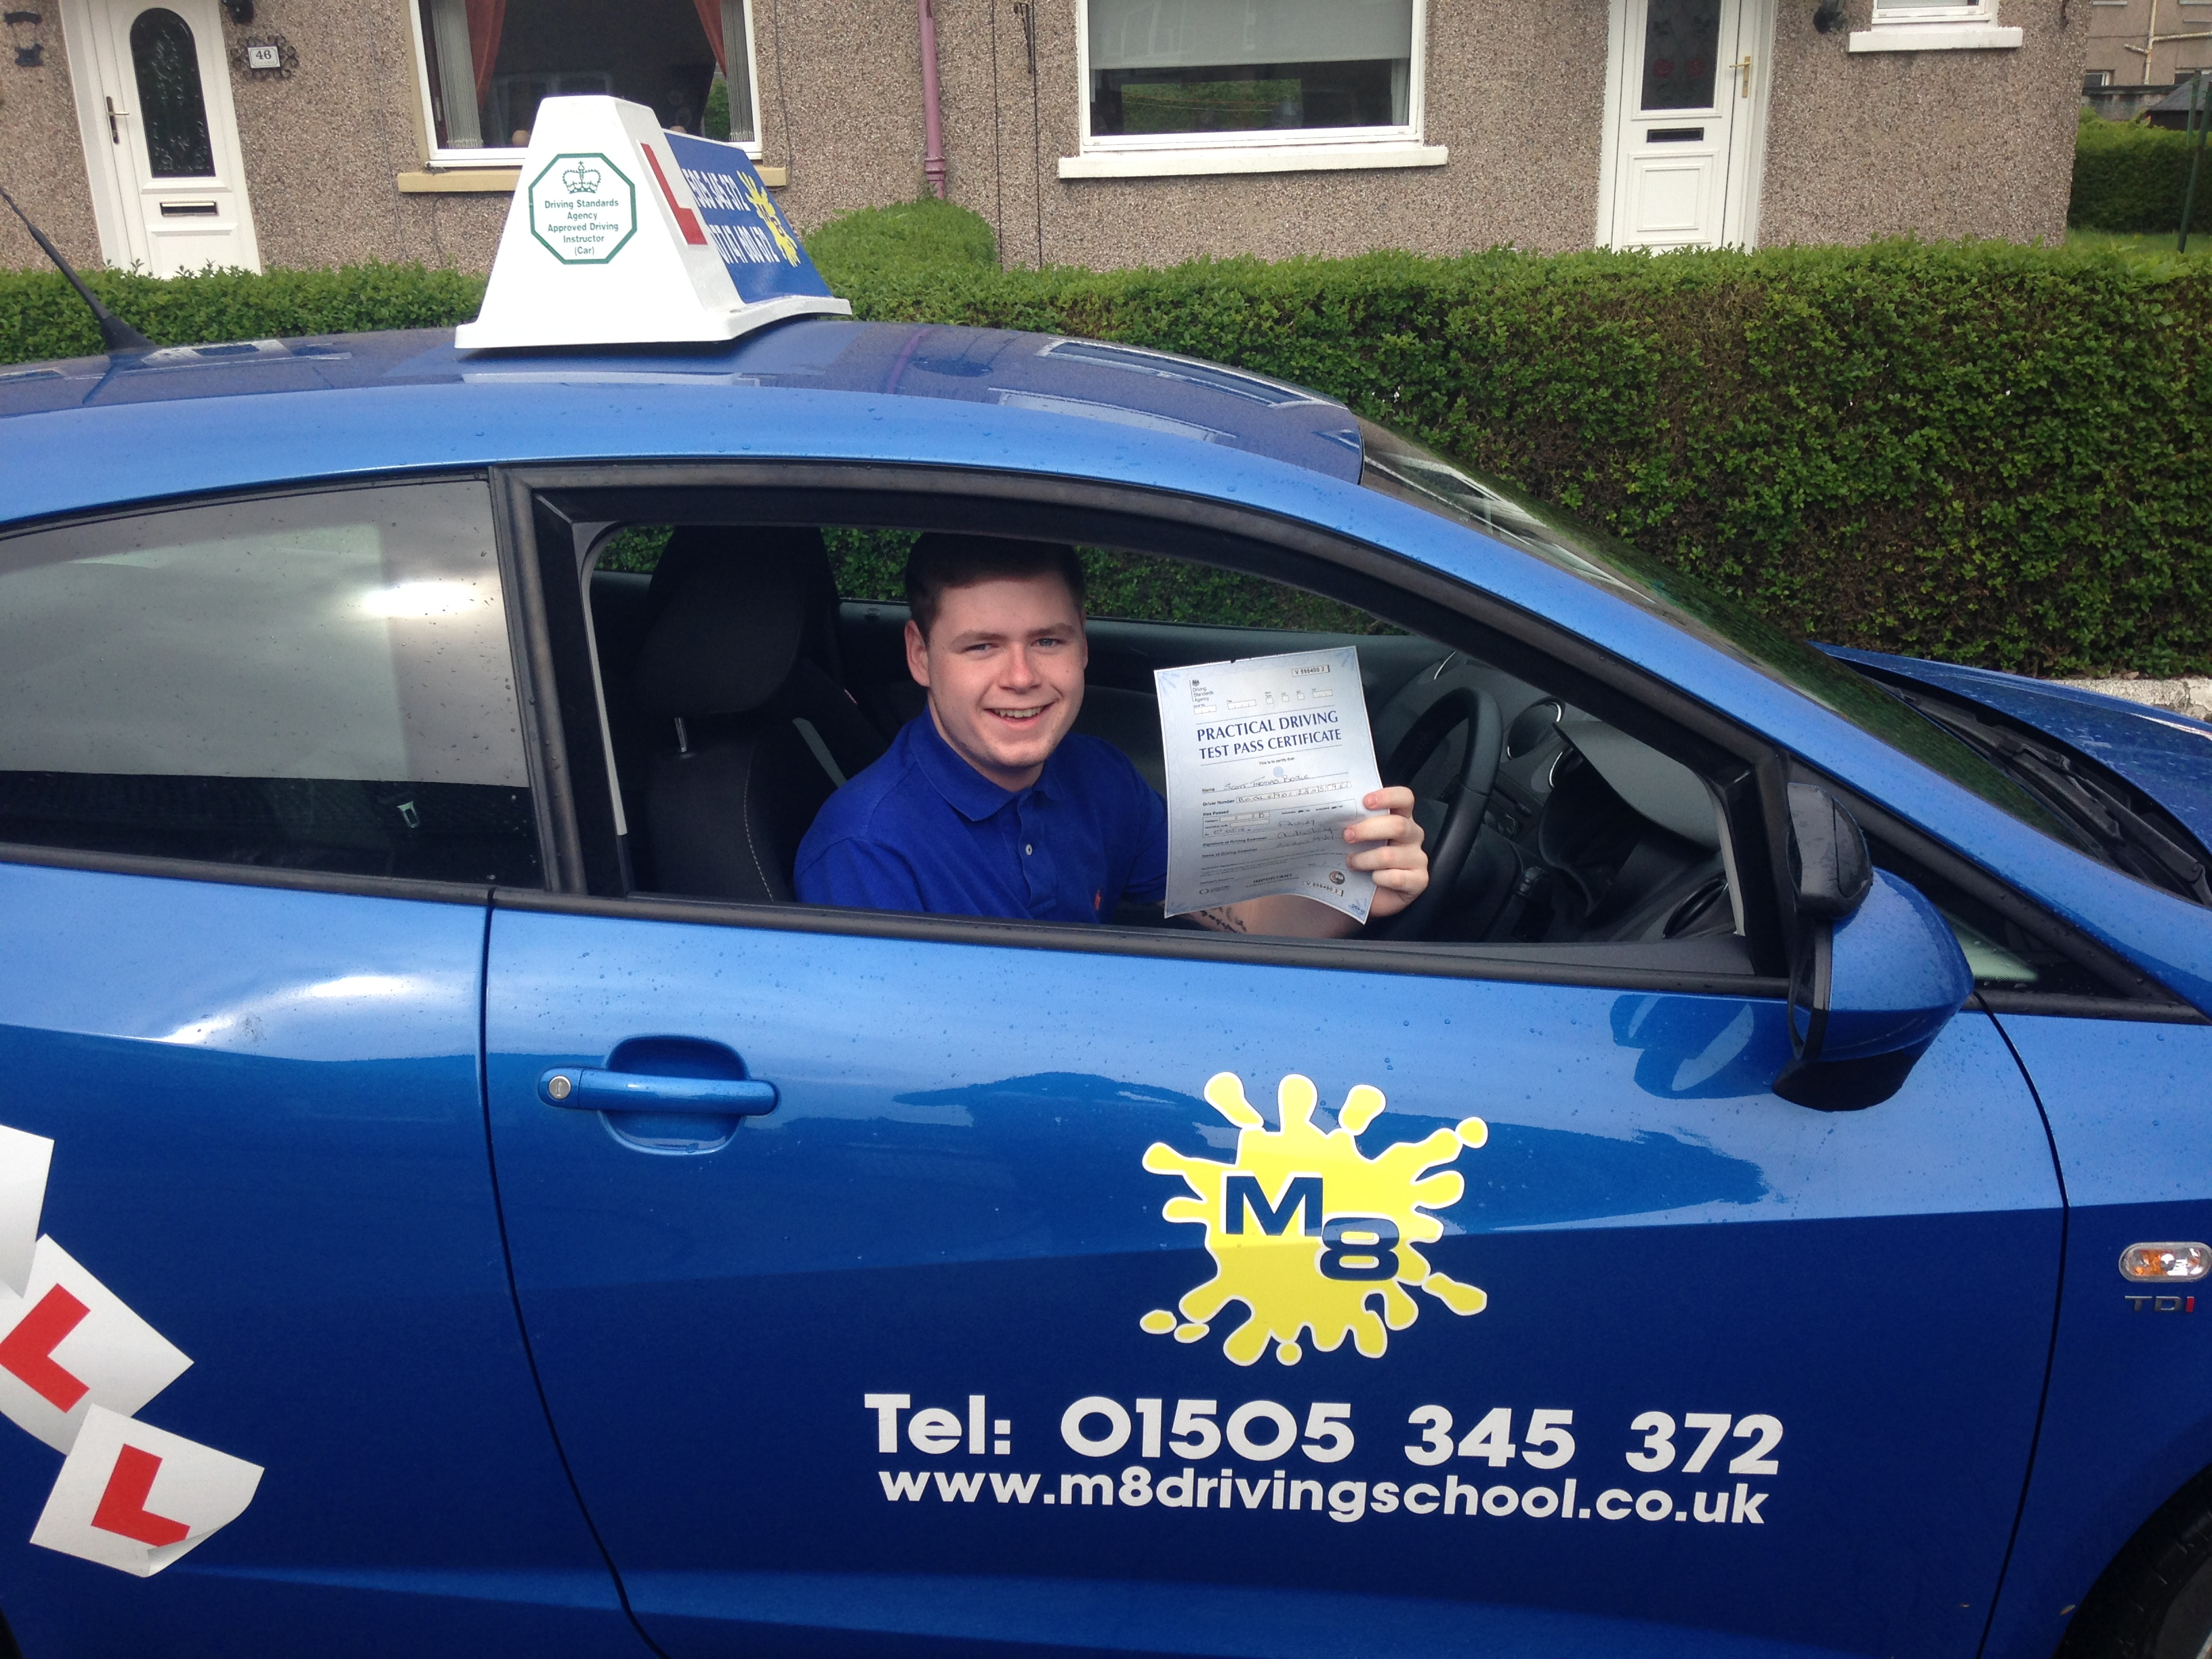 Driving lessons in and around Paisley with an experienced instructor